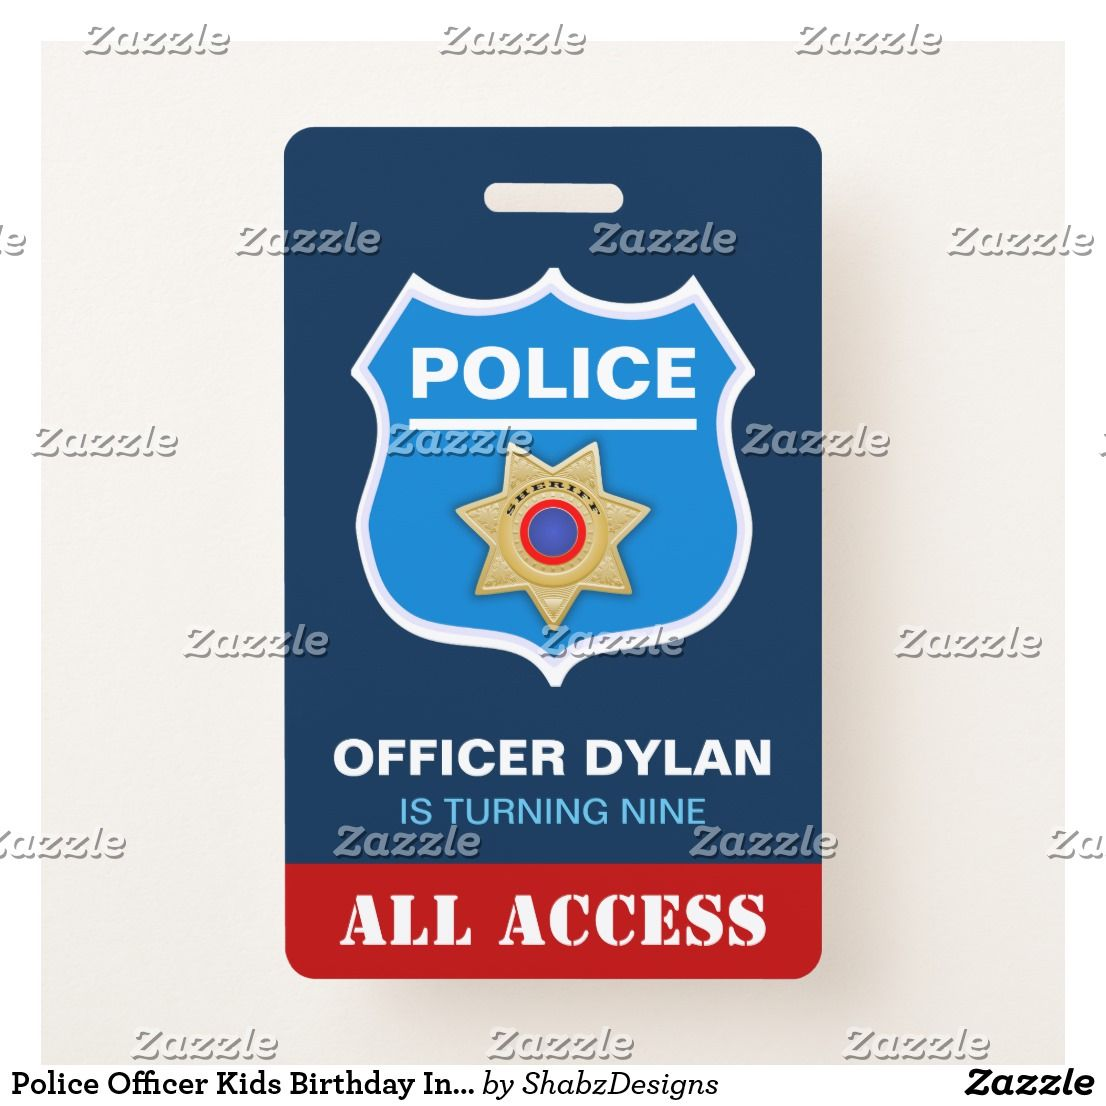 Police officer kids birthday invitation id card badge police officer kids birthday invitation id card badge amaze your guests with this cool police themed stopboris Choice Image